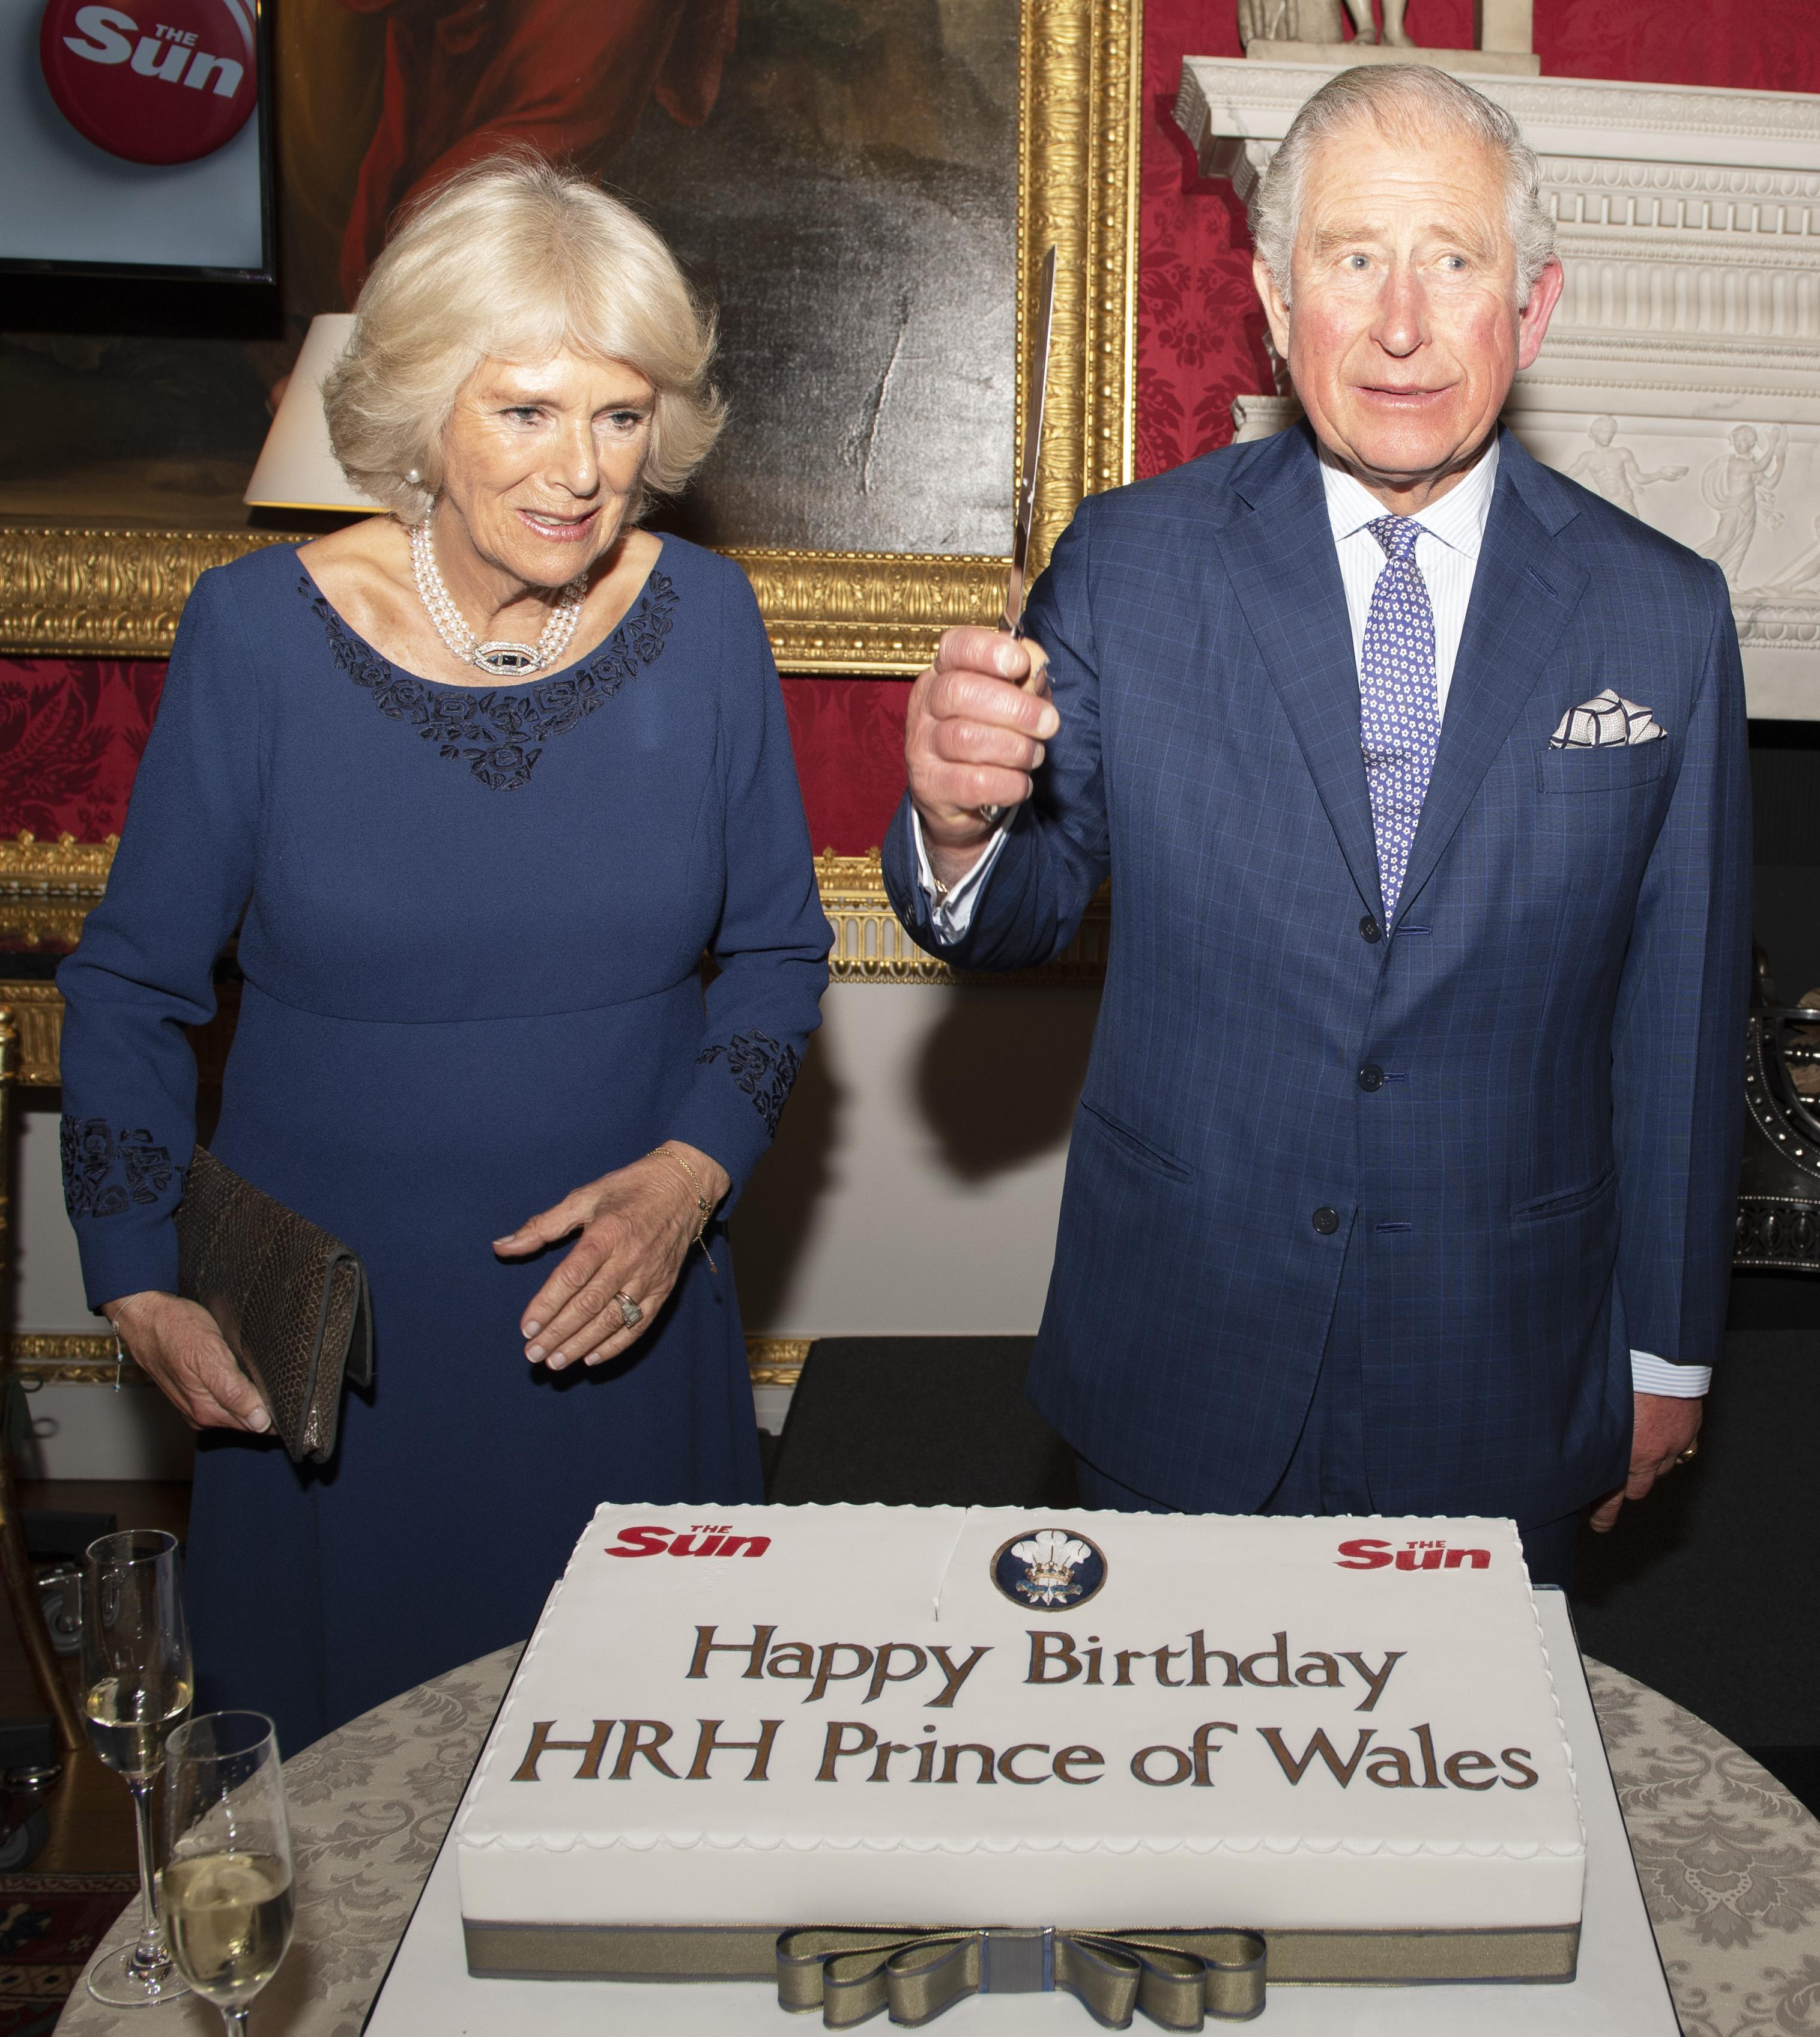 Prince Charles And Camilla Celebrate His 70th Birthday With The Sun S Remarkable Readers And He Thanks Them For Making It More Special